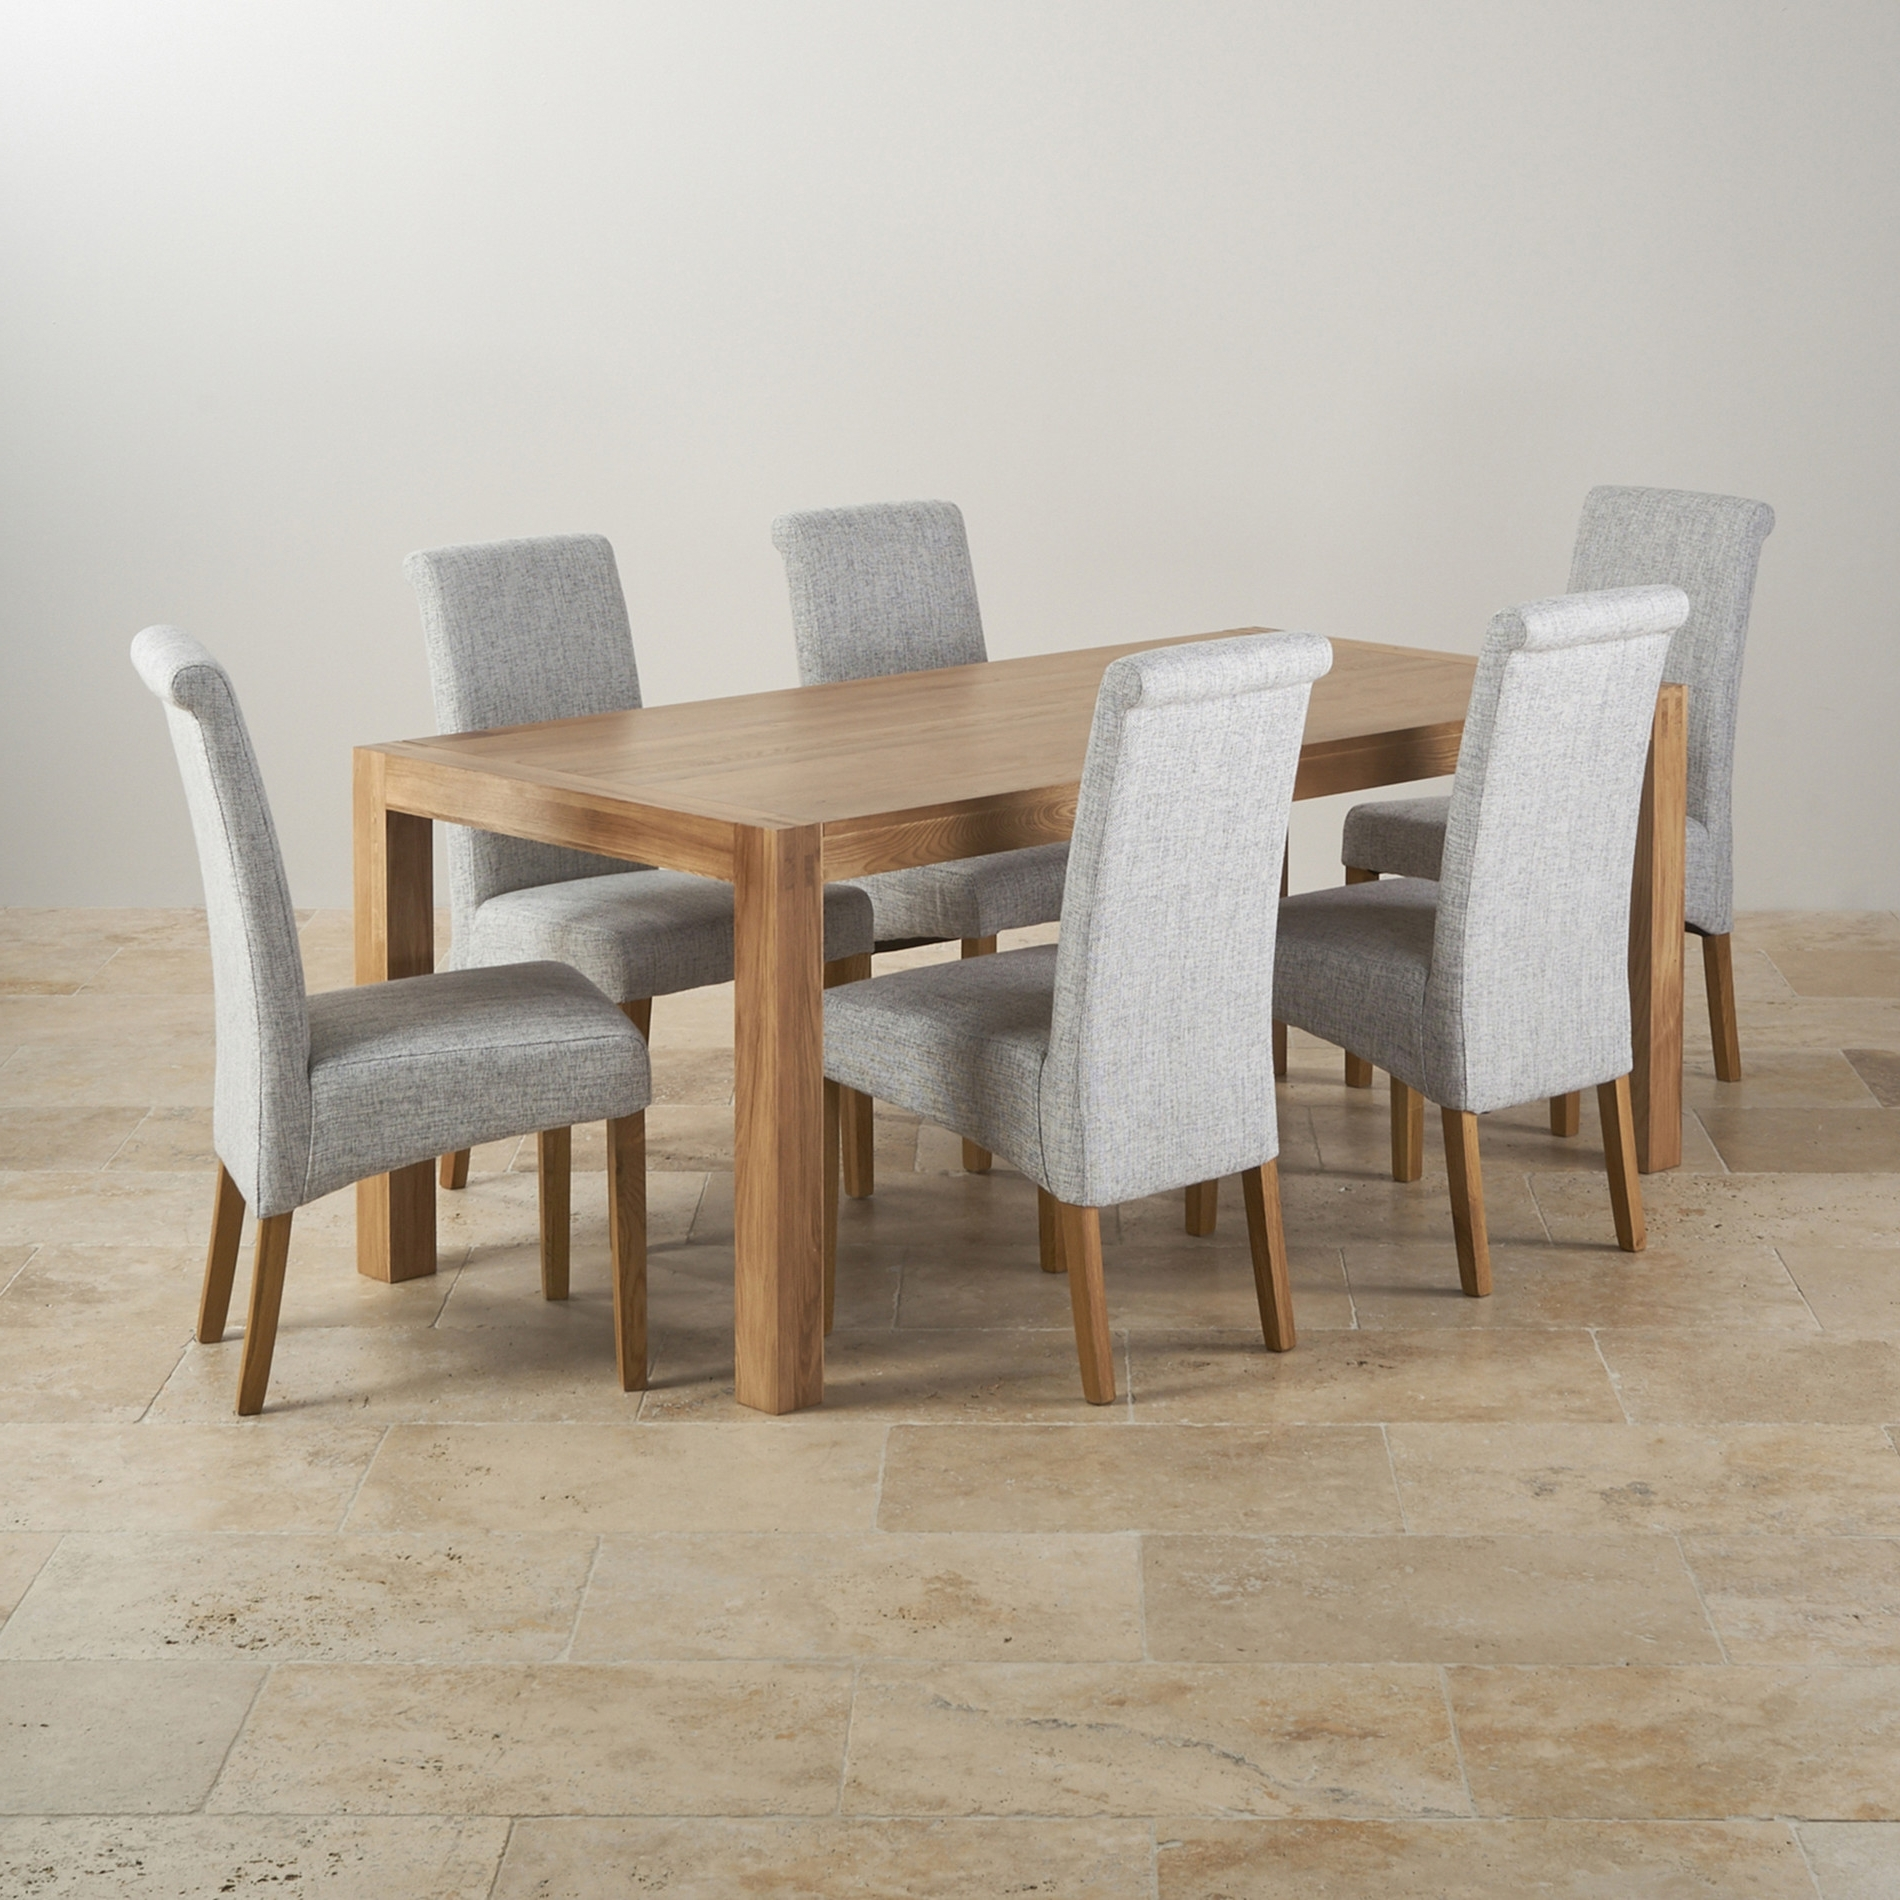 Dining Tables With Grey Chairs in Most Up-to-Date Alto Solid Oak 6Ft Dining Table With 6 Grey Fabric Chairs Ghost